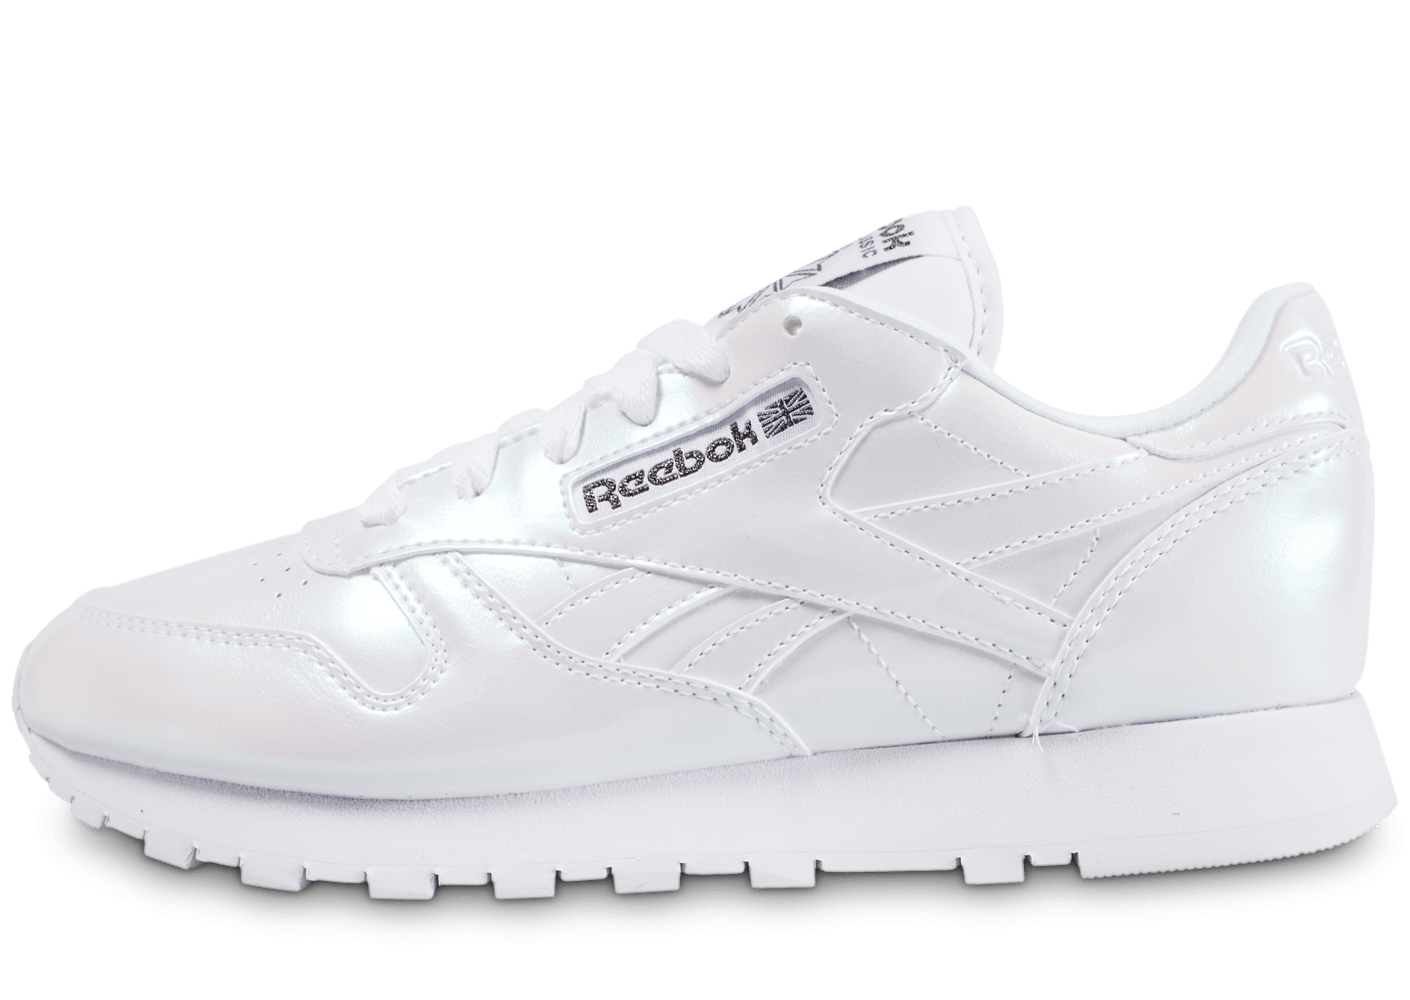 Chaussures Leather Classic Pp Baskets Reebok Blanche Toutes Les 2bH9IEYWDe